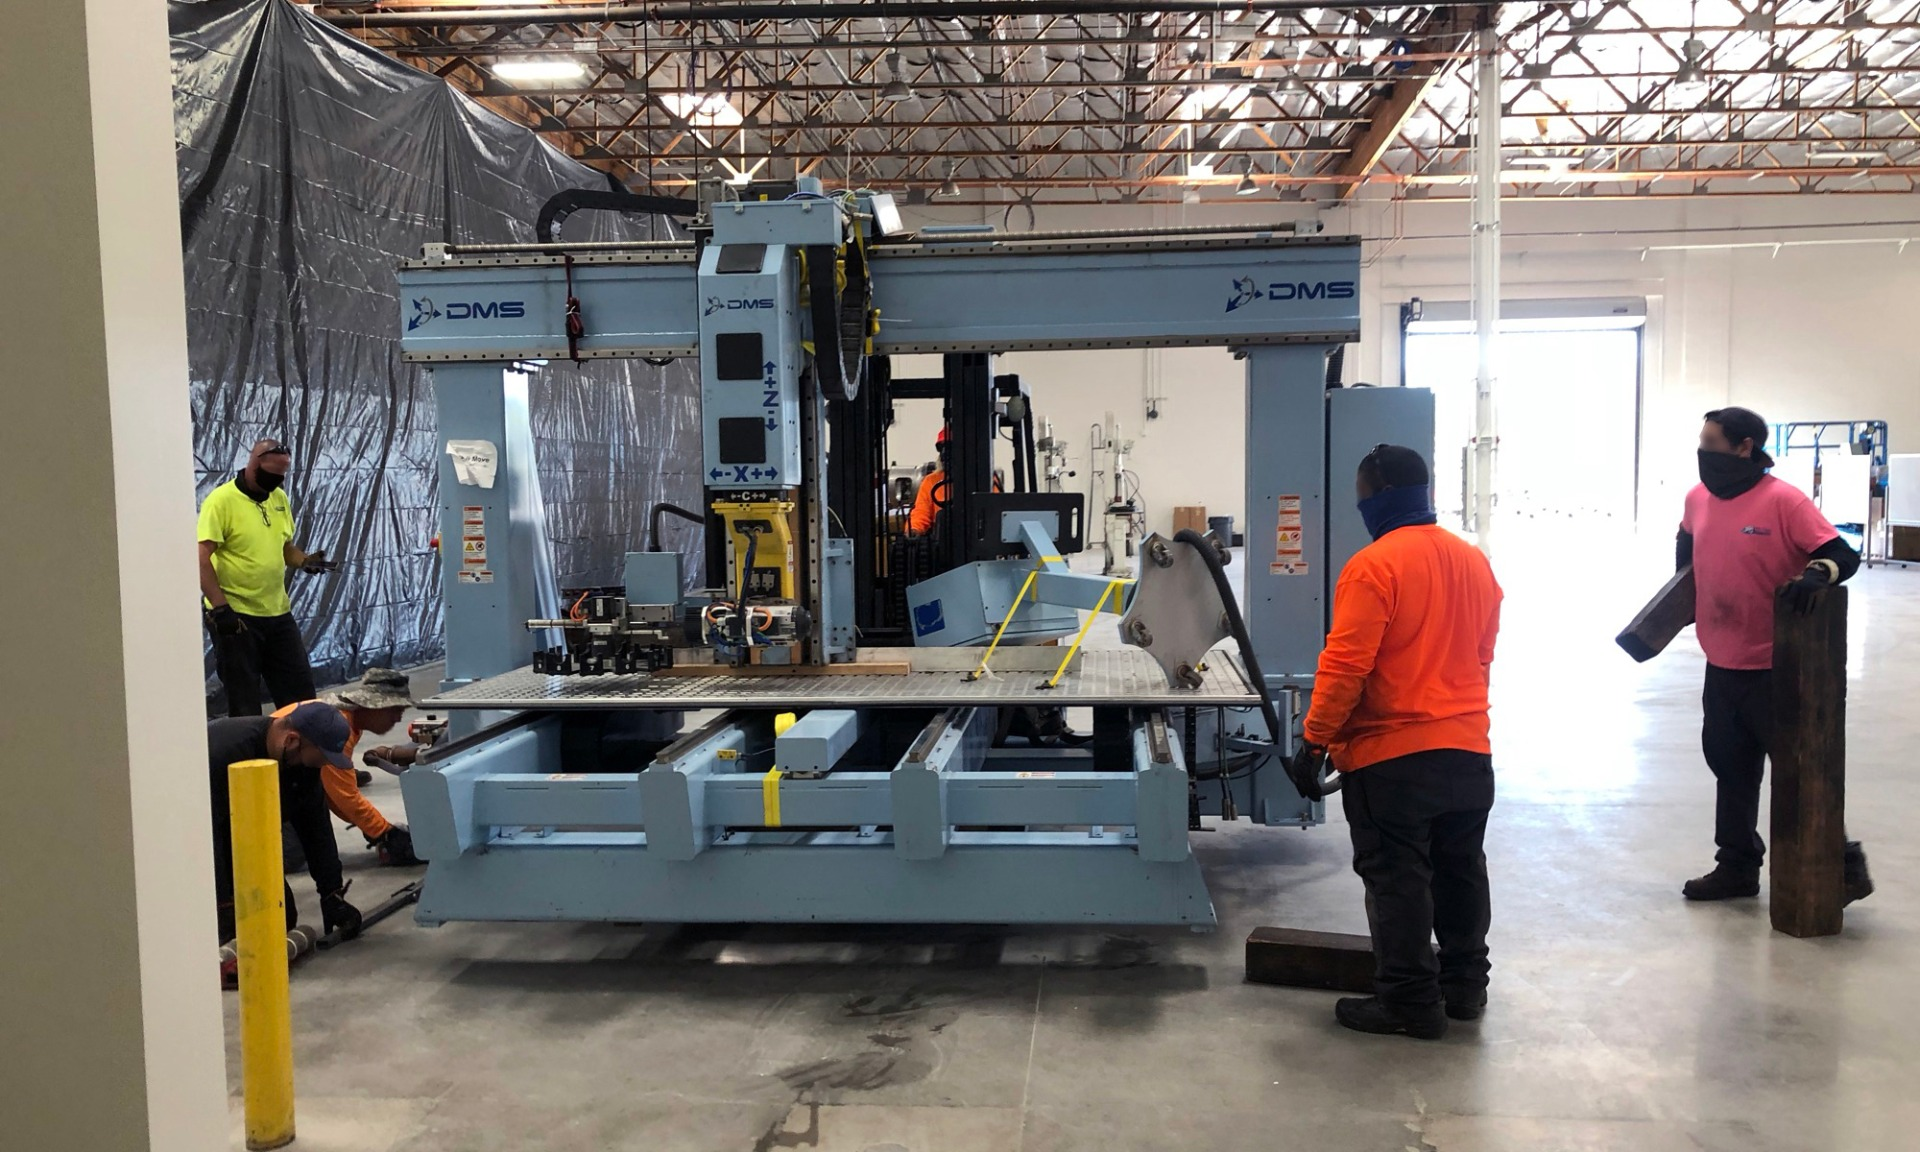 Moving the 5-axis Machine